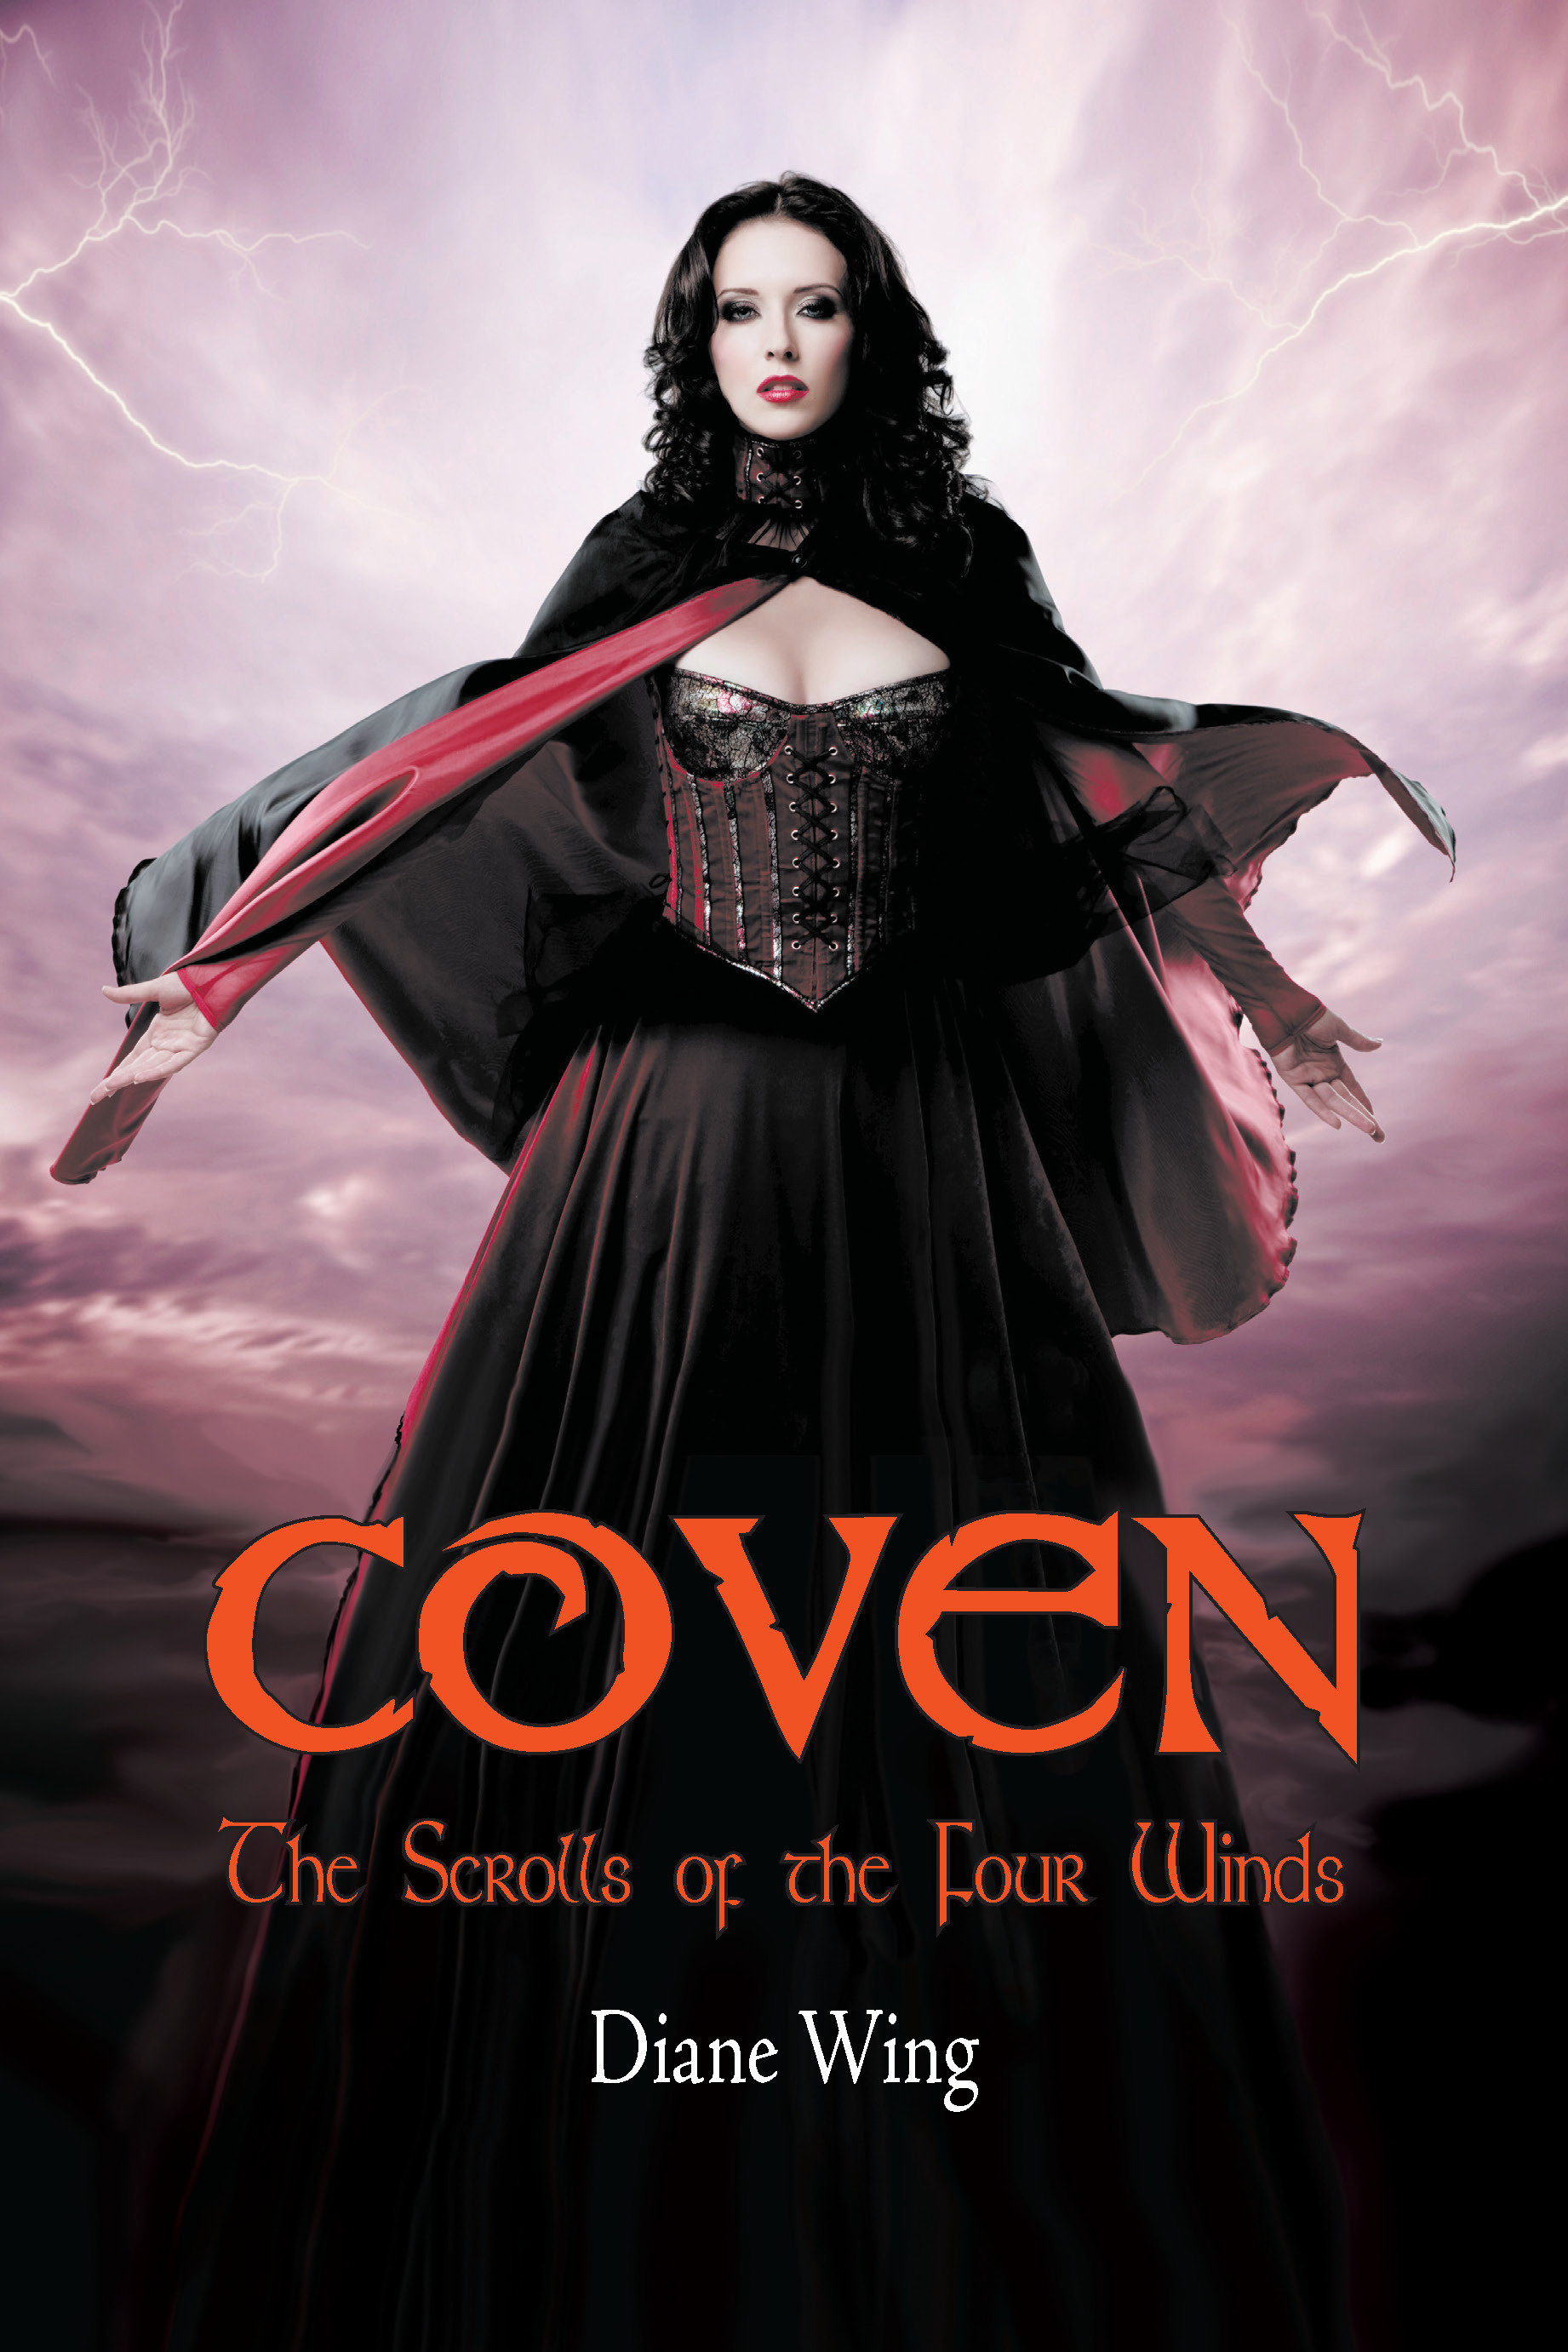 Coven: The Scrolls of the Four Winds 978-1-61599-173-0